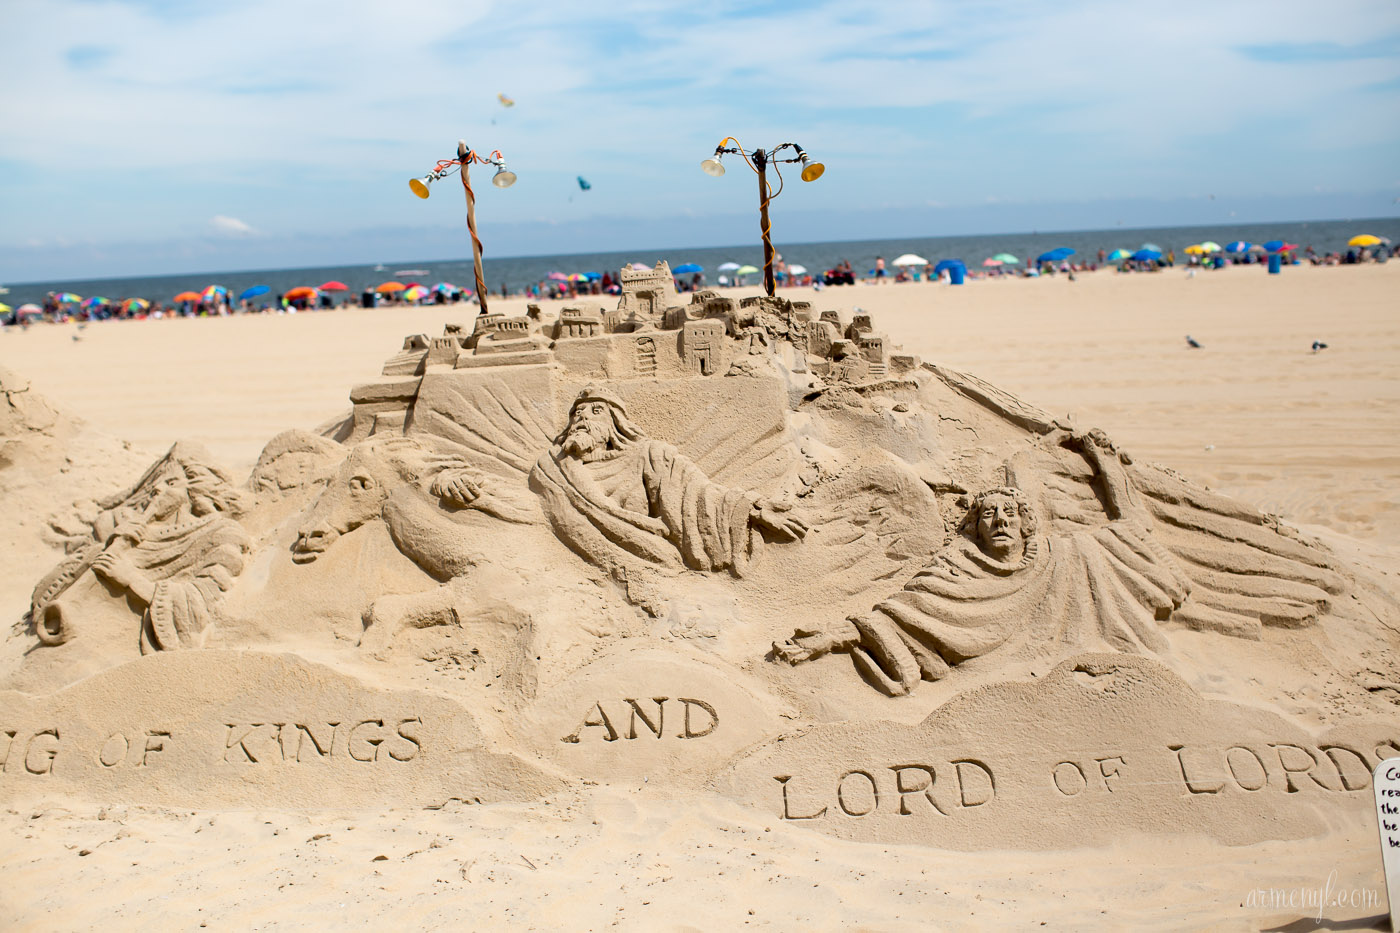 King of Kings and Lord of Lords Masterpiece Sandcastle by Armenyl photography Armenyl.com copyright